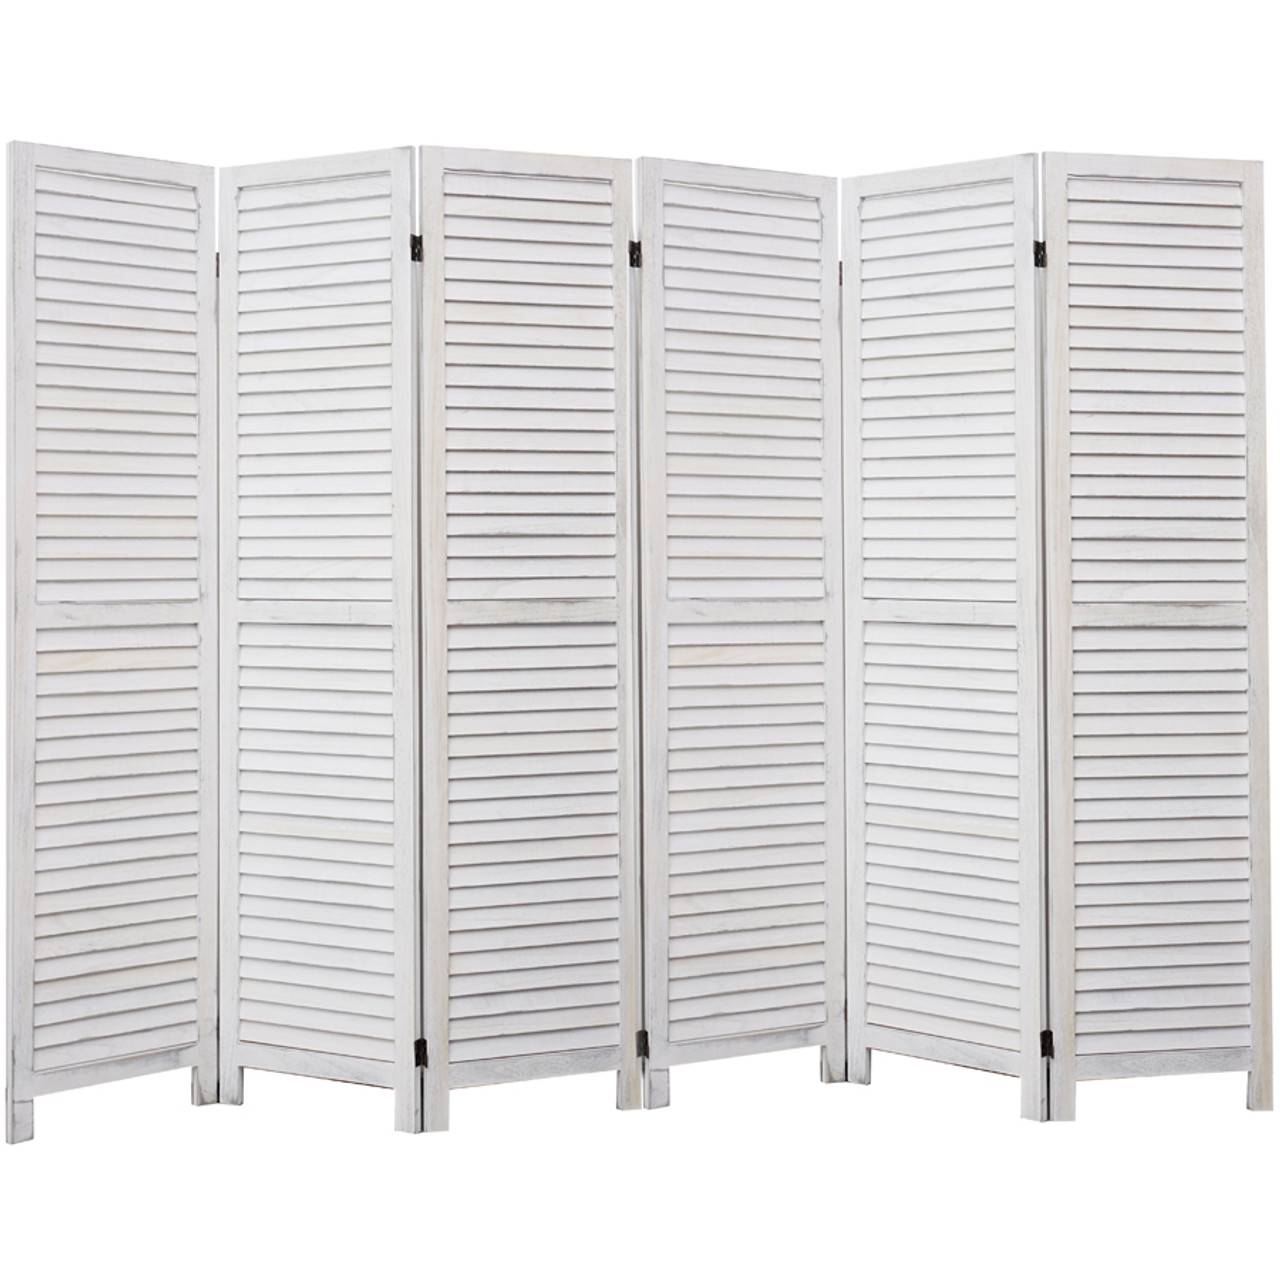 4, 6, 8 Panel Room Divider Full Length Wood Shutters White in USA, California, New York, New York City, Los Angeles, San Francisco, Pennsylvania, Washington DC, Virginia and Maryland